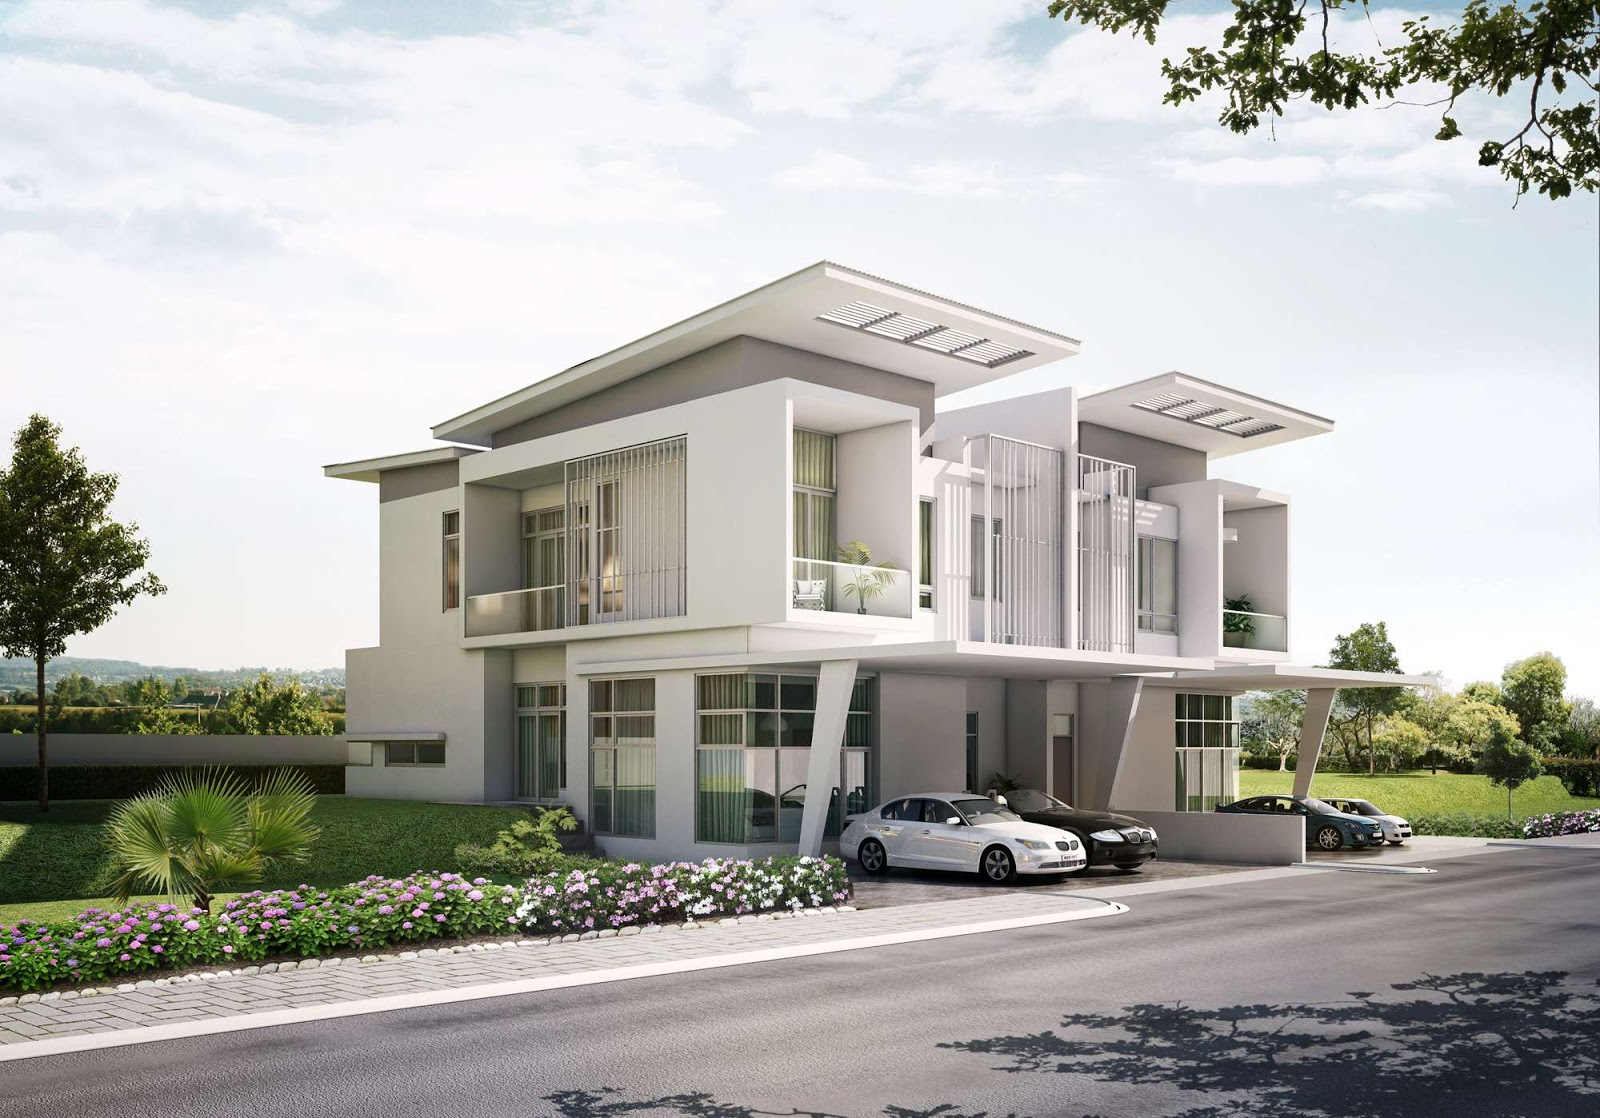 New home designs latest singapore modern homes exterior for Front design of small house